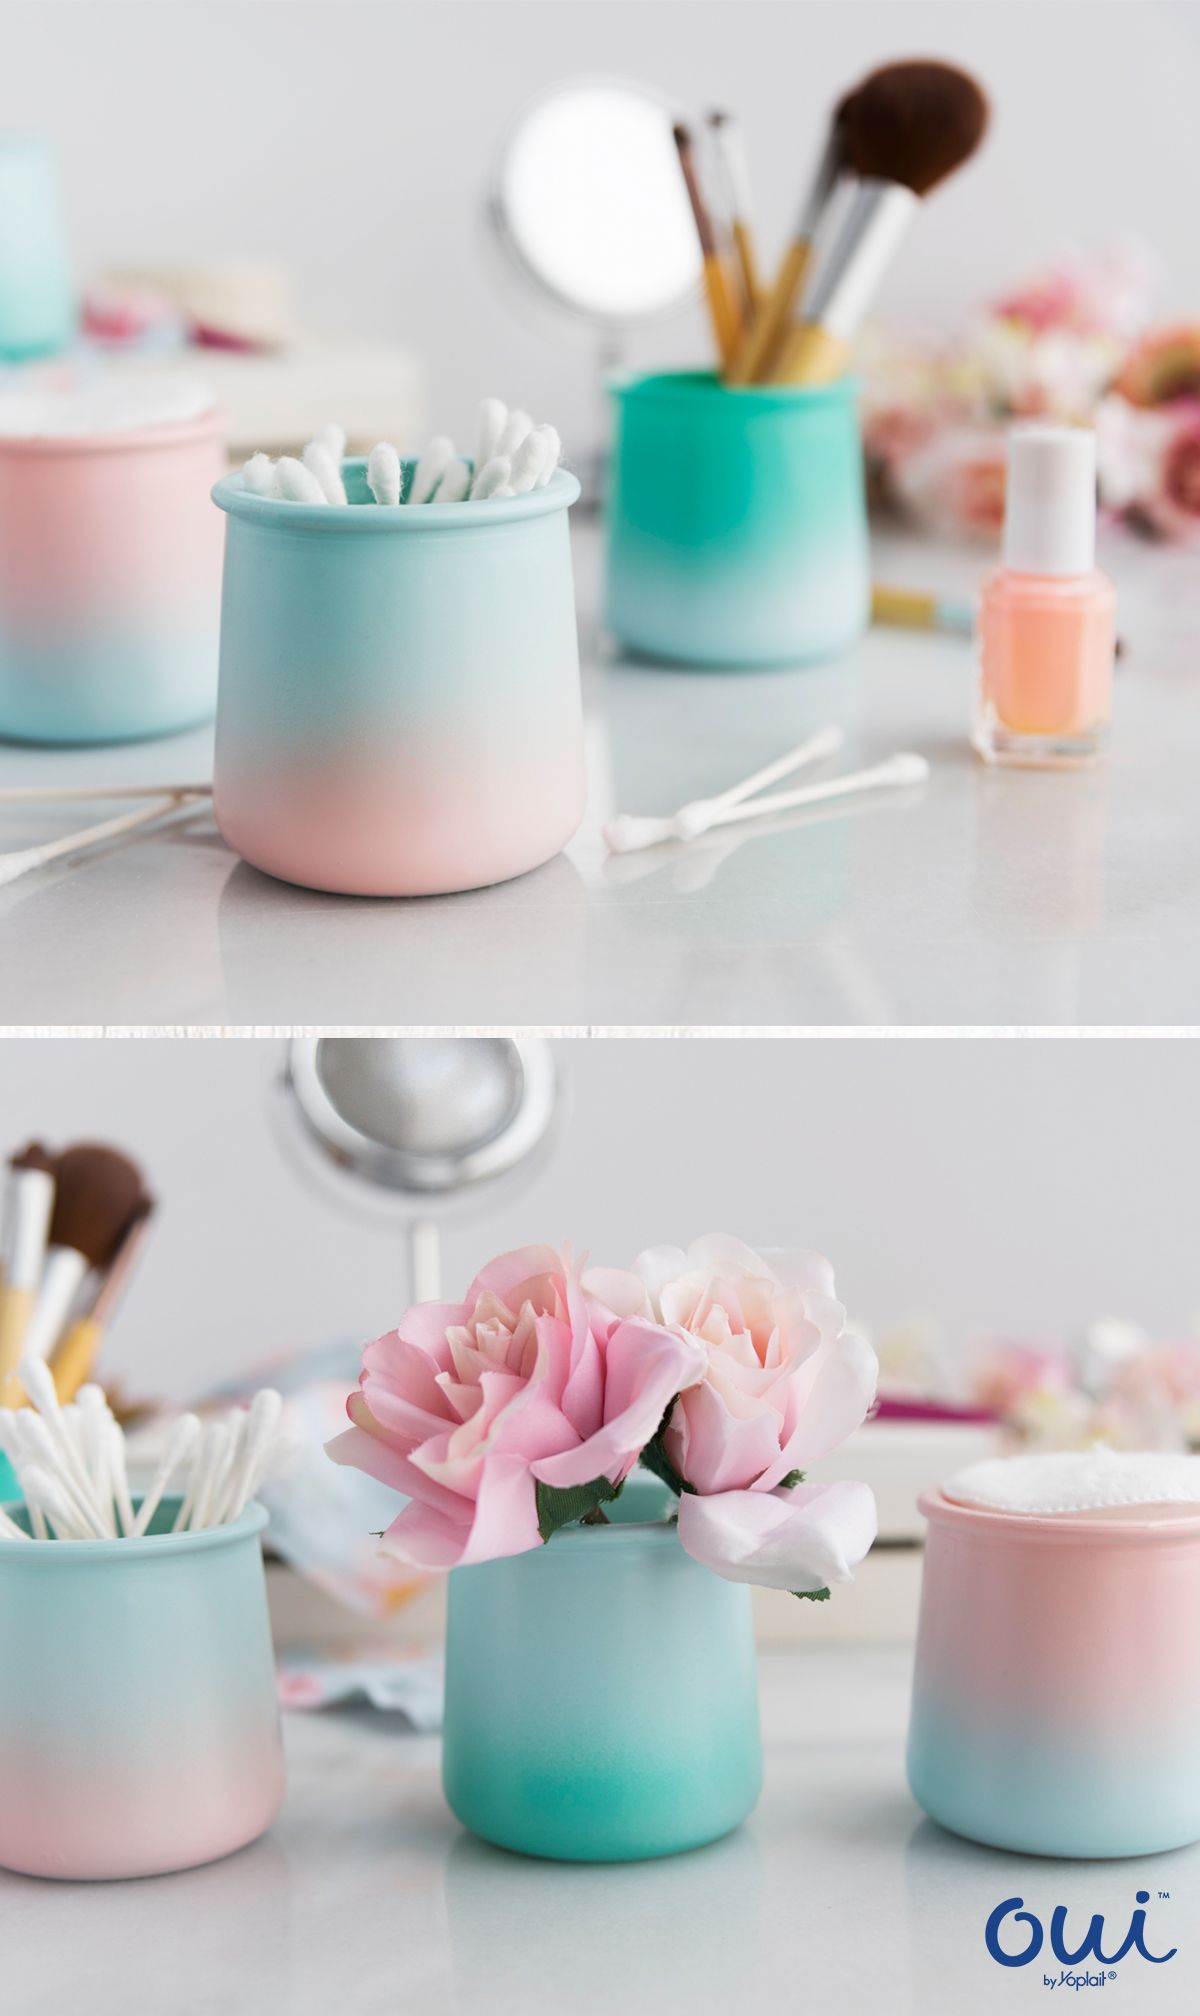 Oui By Yoplait Glass Pots Are The Perfect Diy This Spring Spray Paint Pots In Your Favorite Colors To Crafts With Glass Jars Baby Food Jar Crafts Glass Crafts